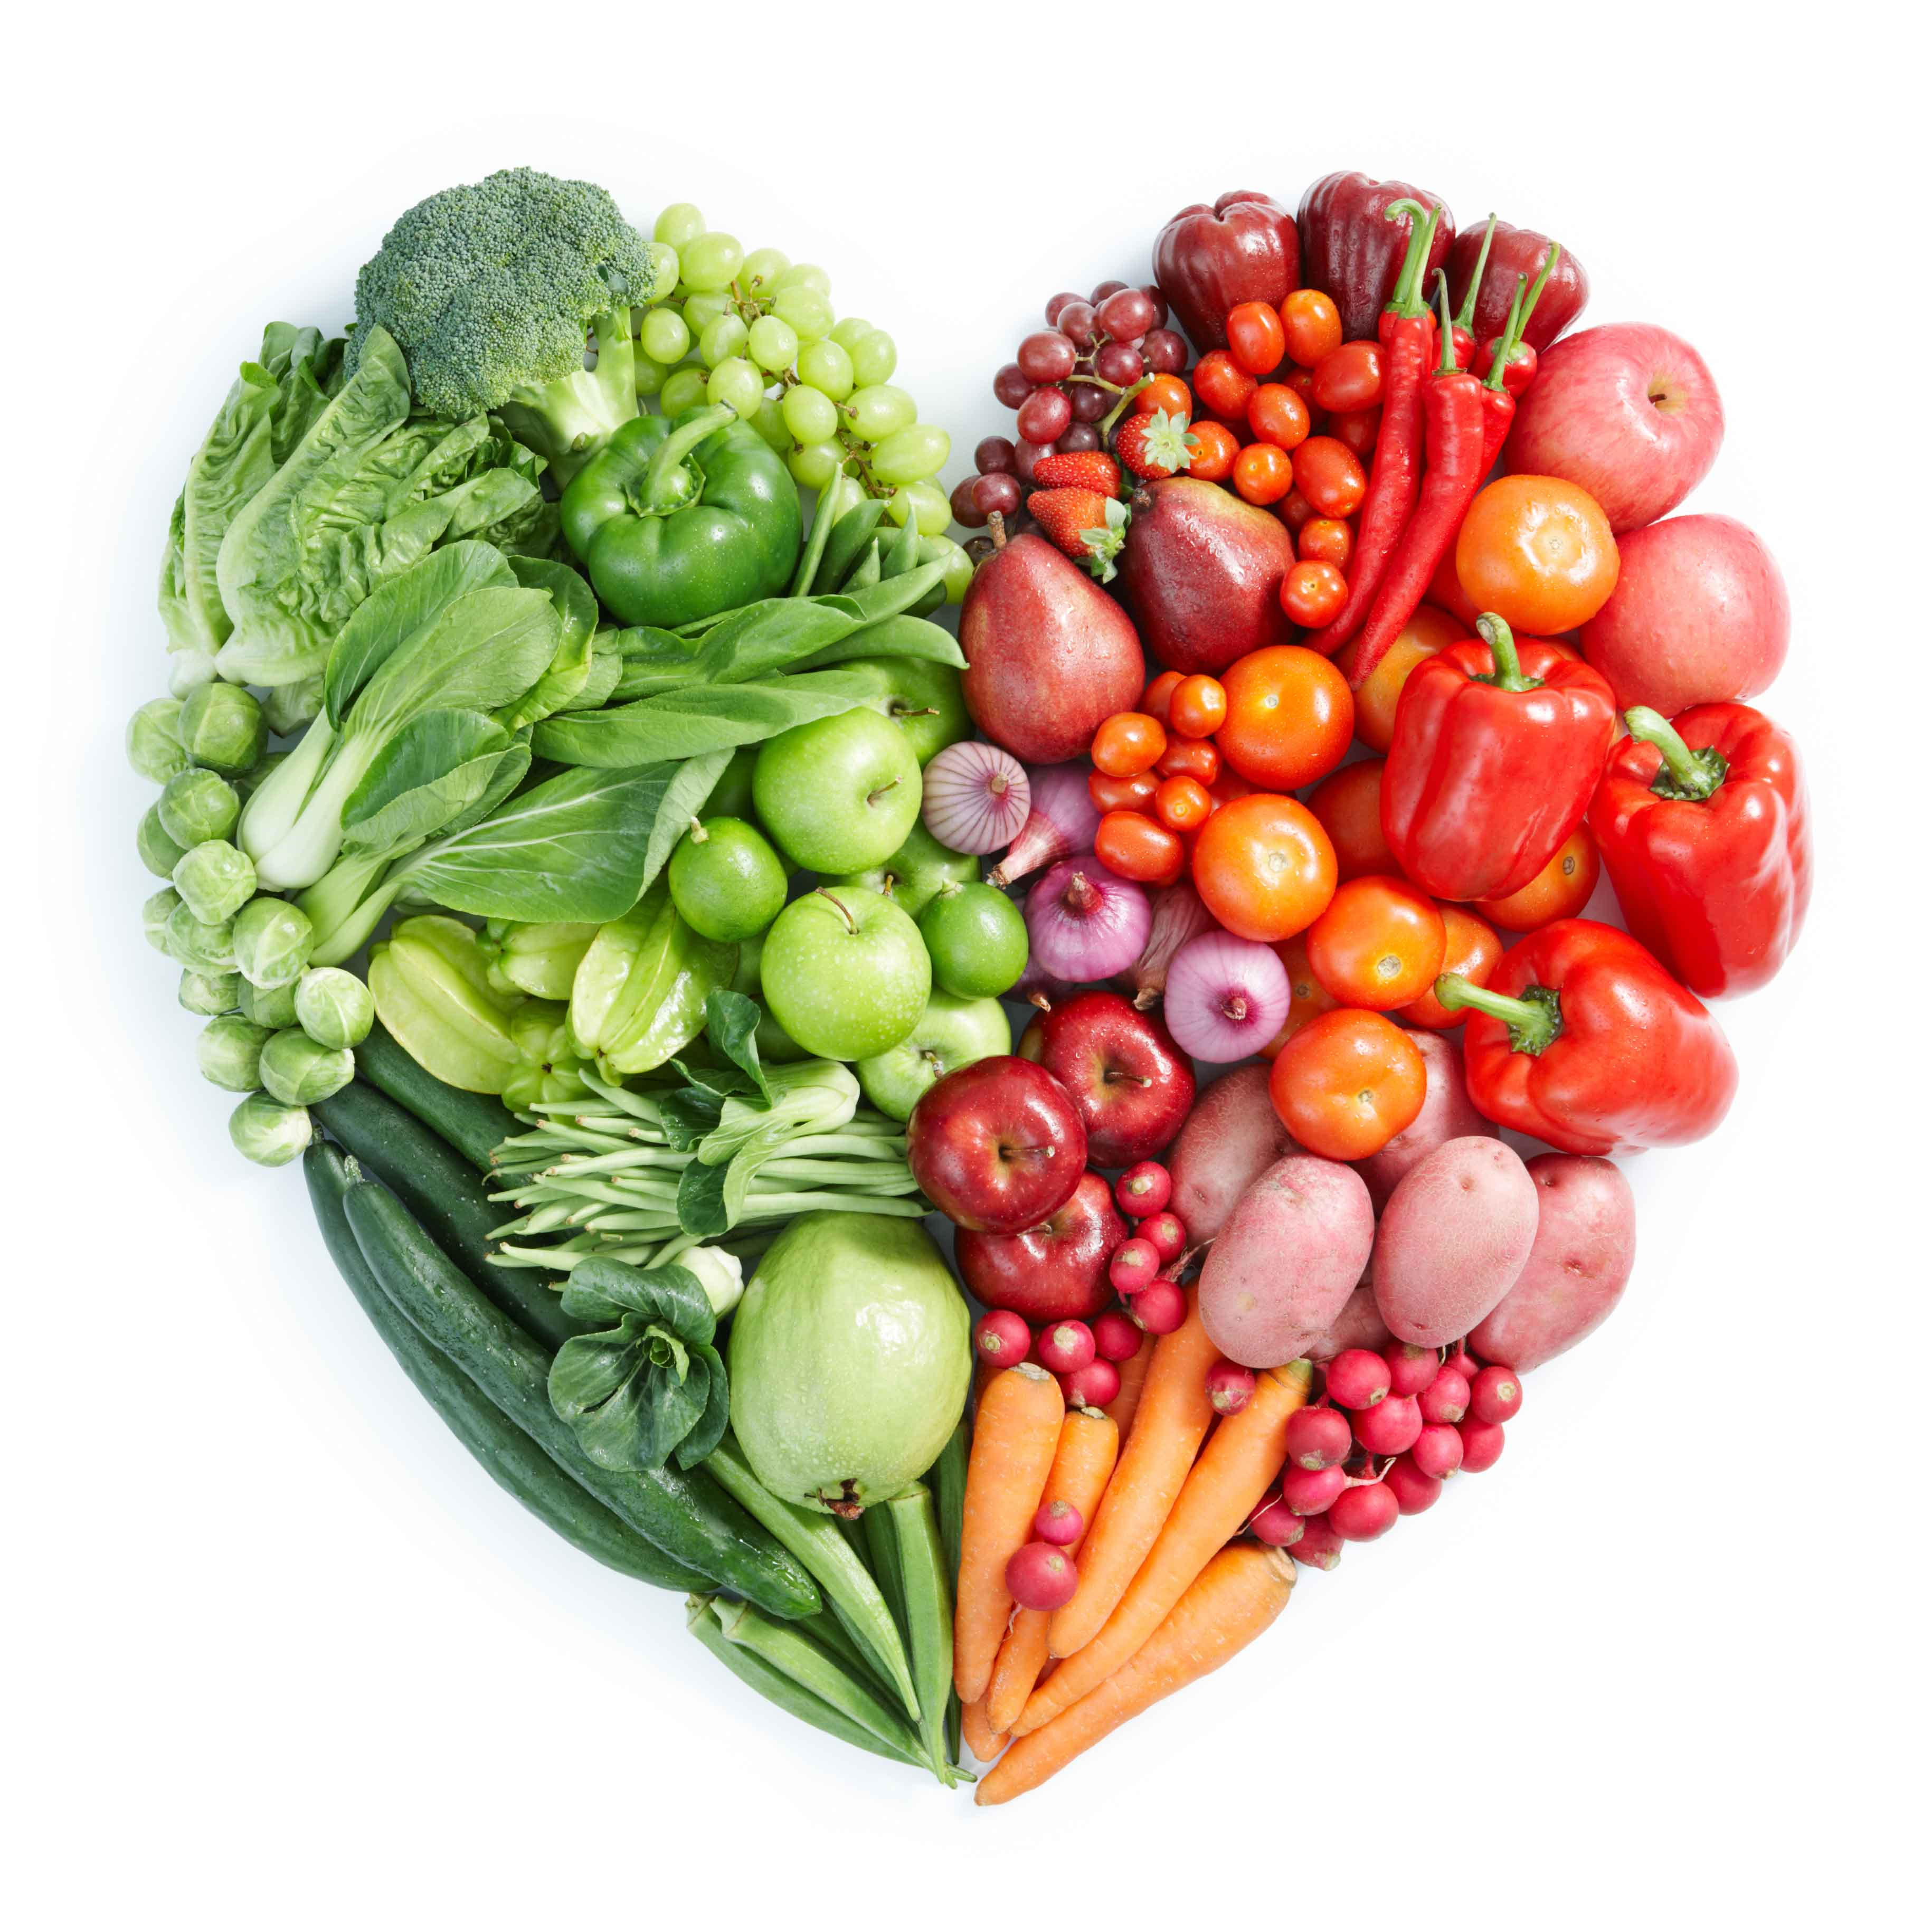 heart-made-of-vegetables-and-fruits